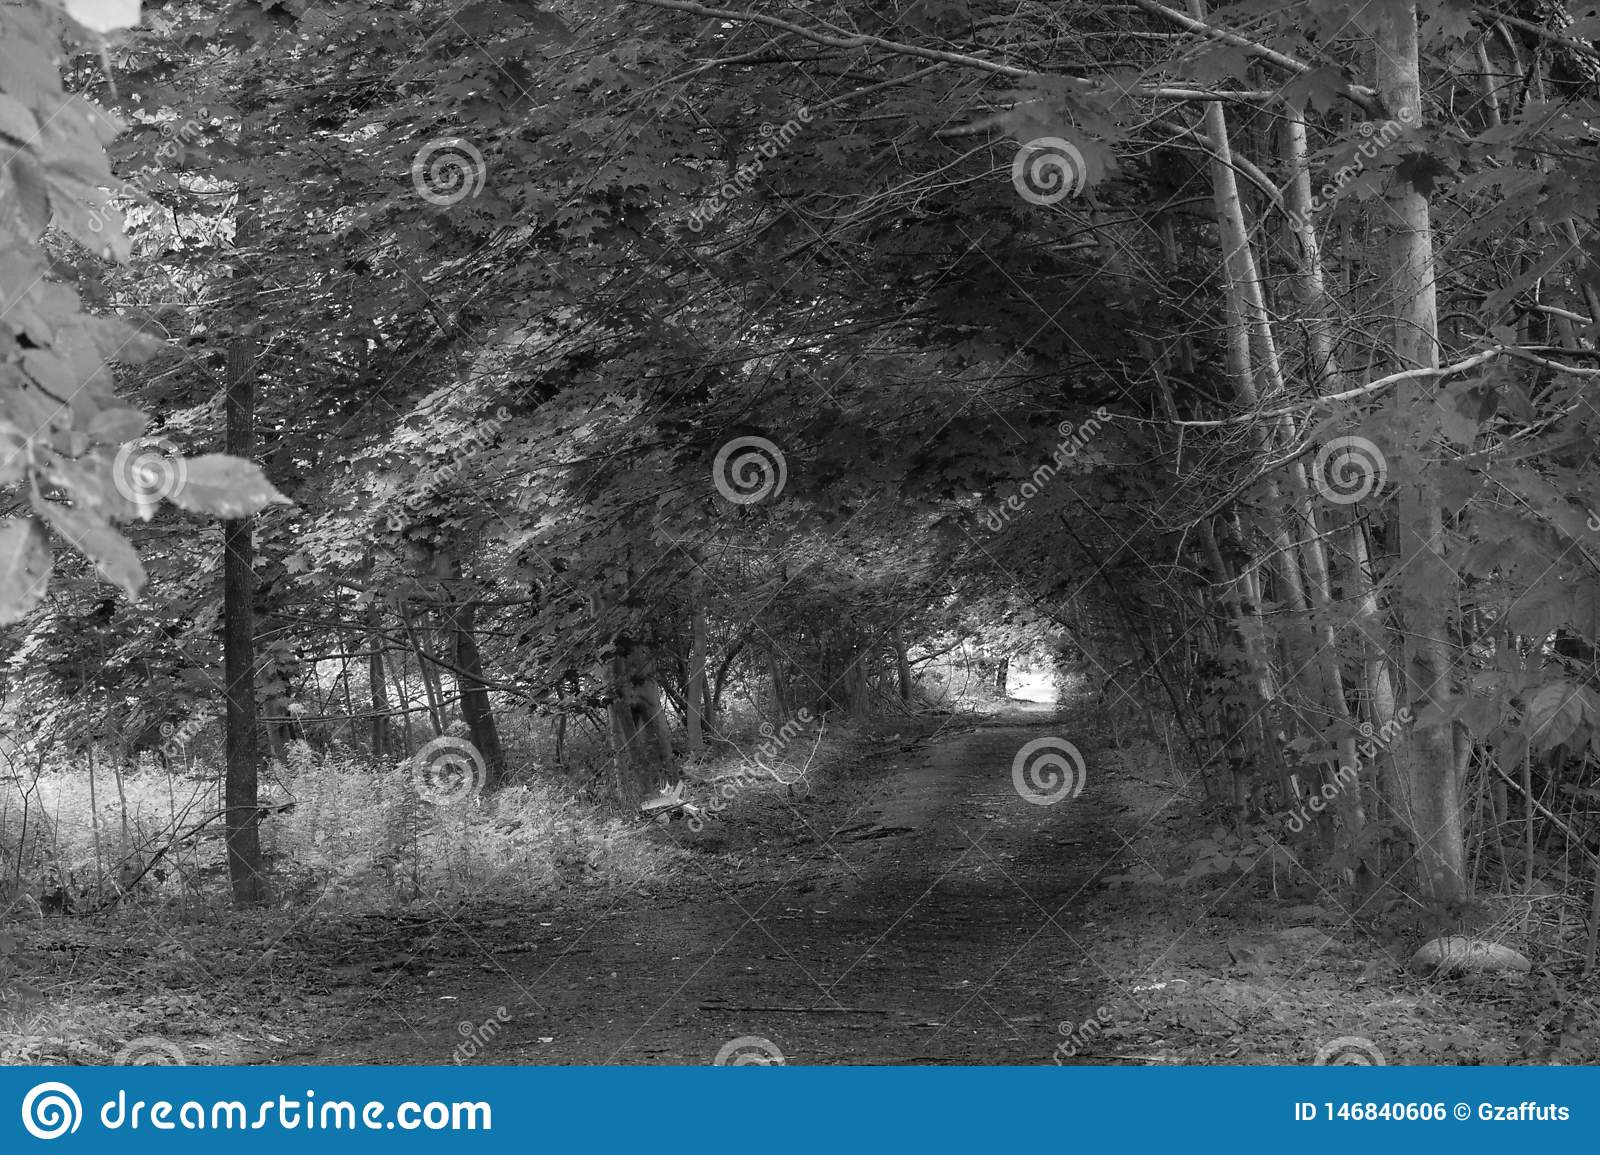 Path through woods along dirt road with light at end